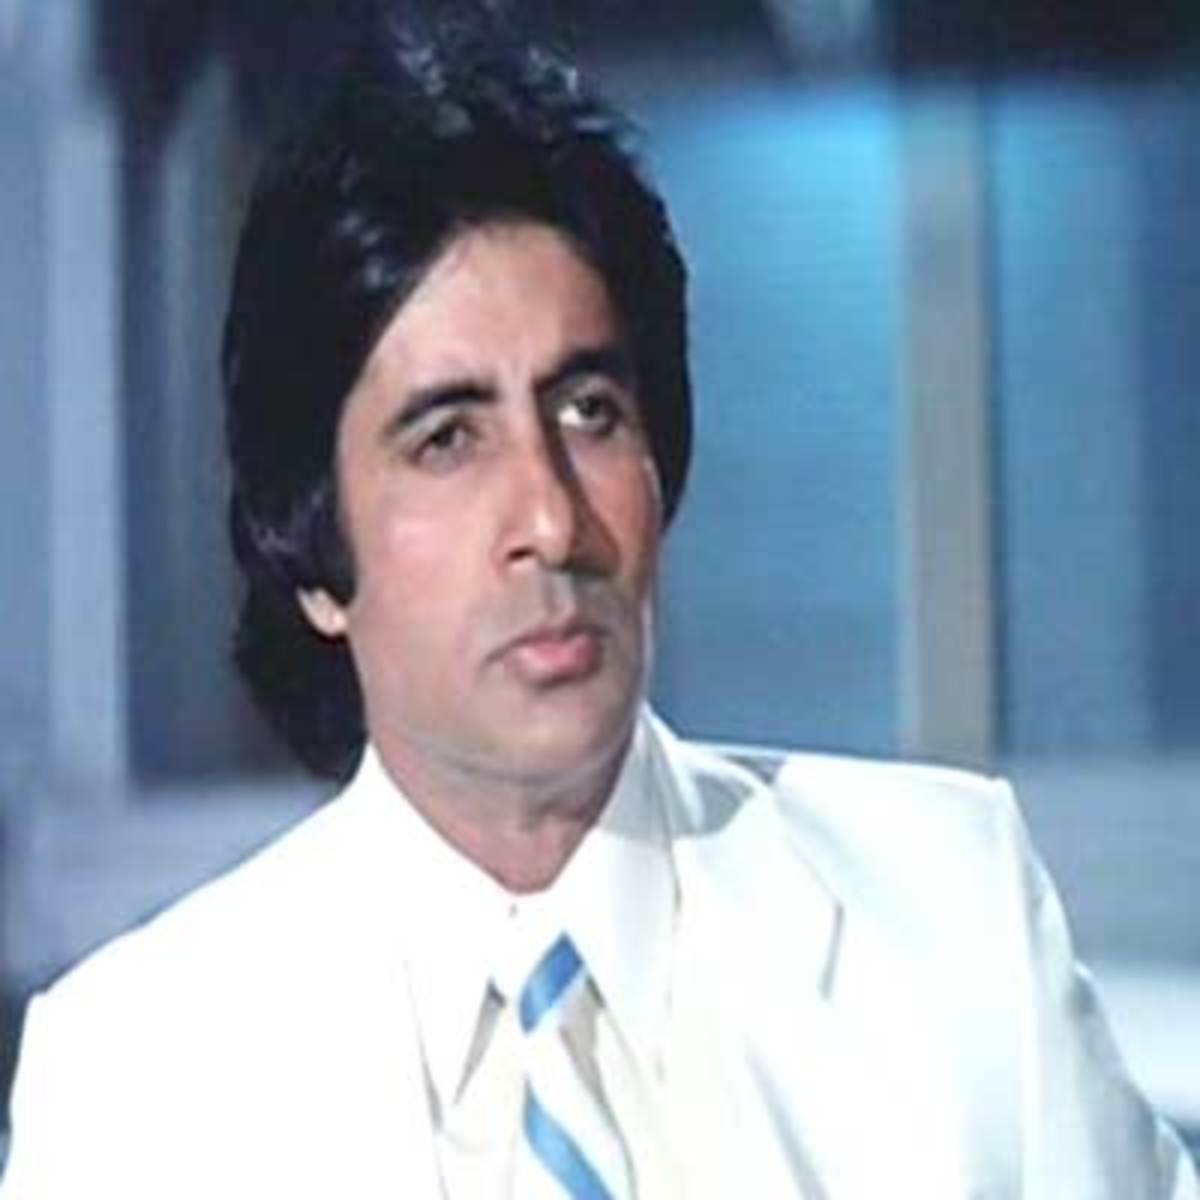 This number brings out the pain of an ailing soul (played by Amitabh Bacchan), who is starved of affection, and having got it finally, has lost it again.